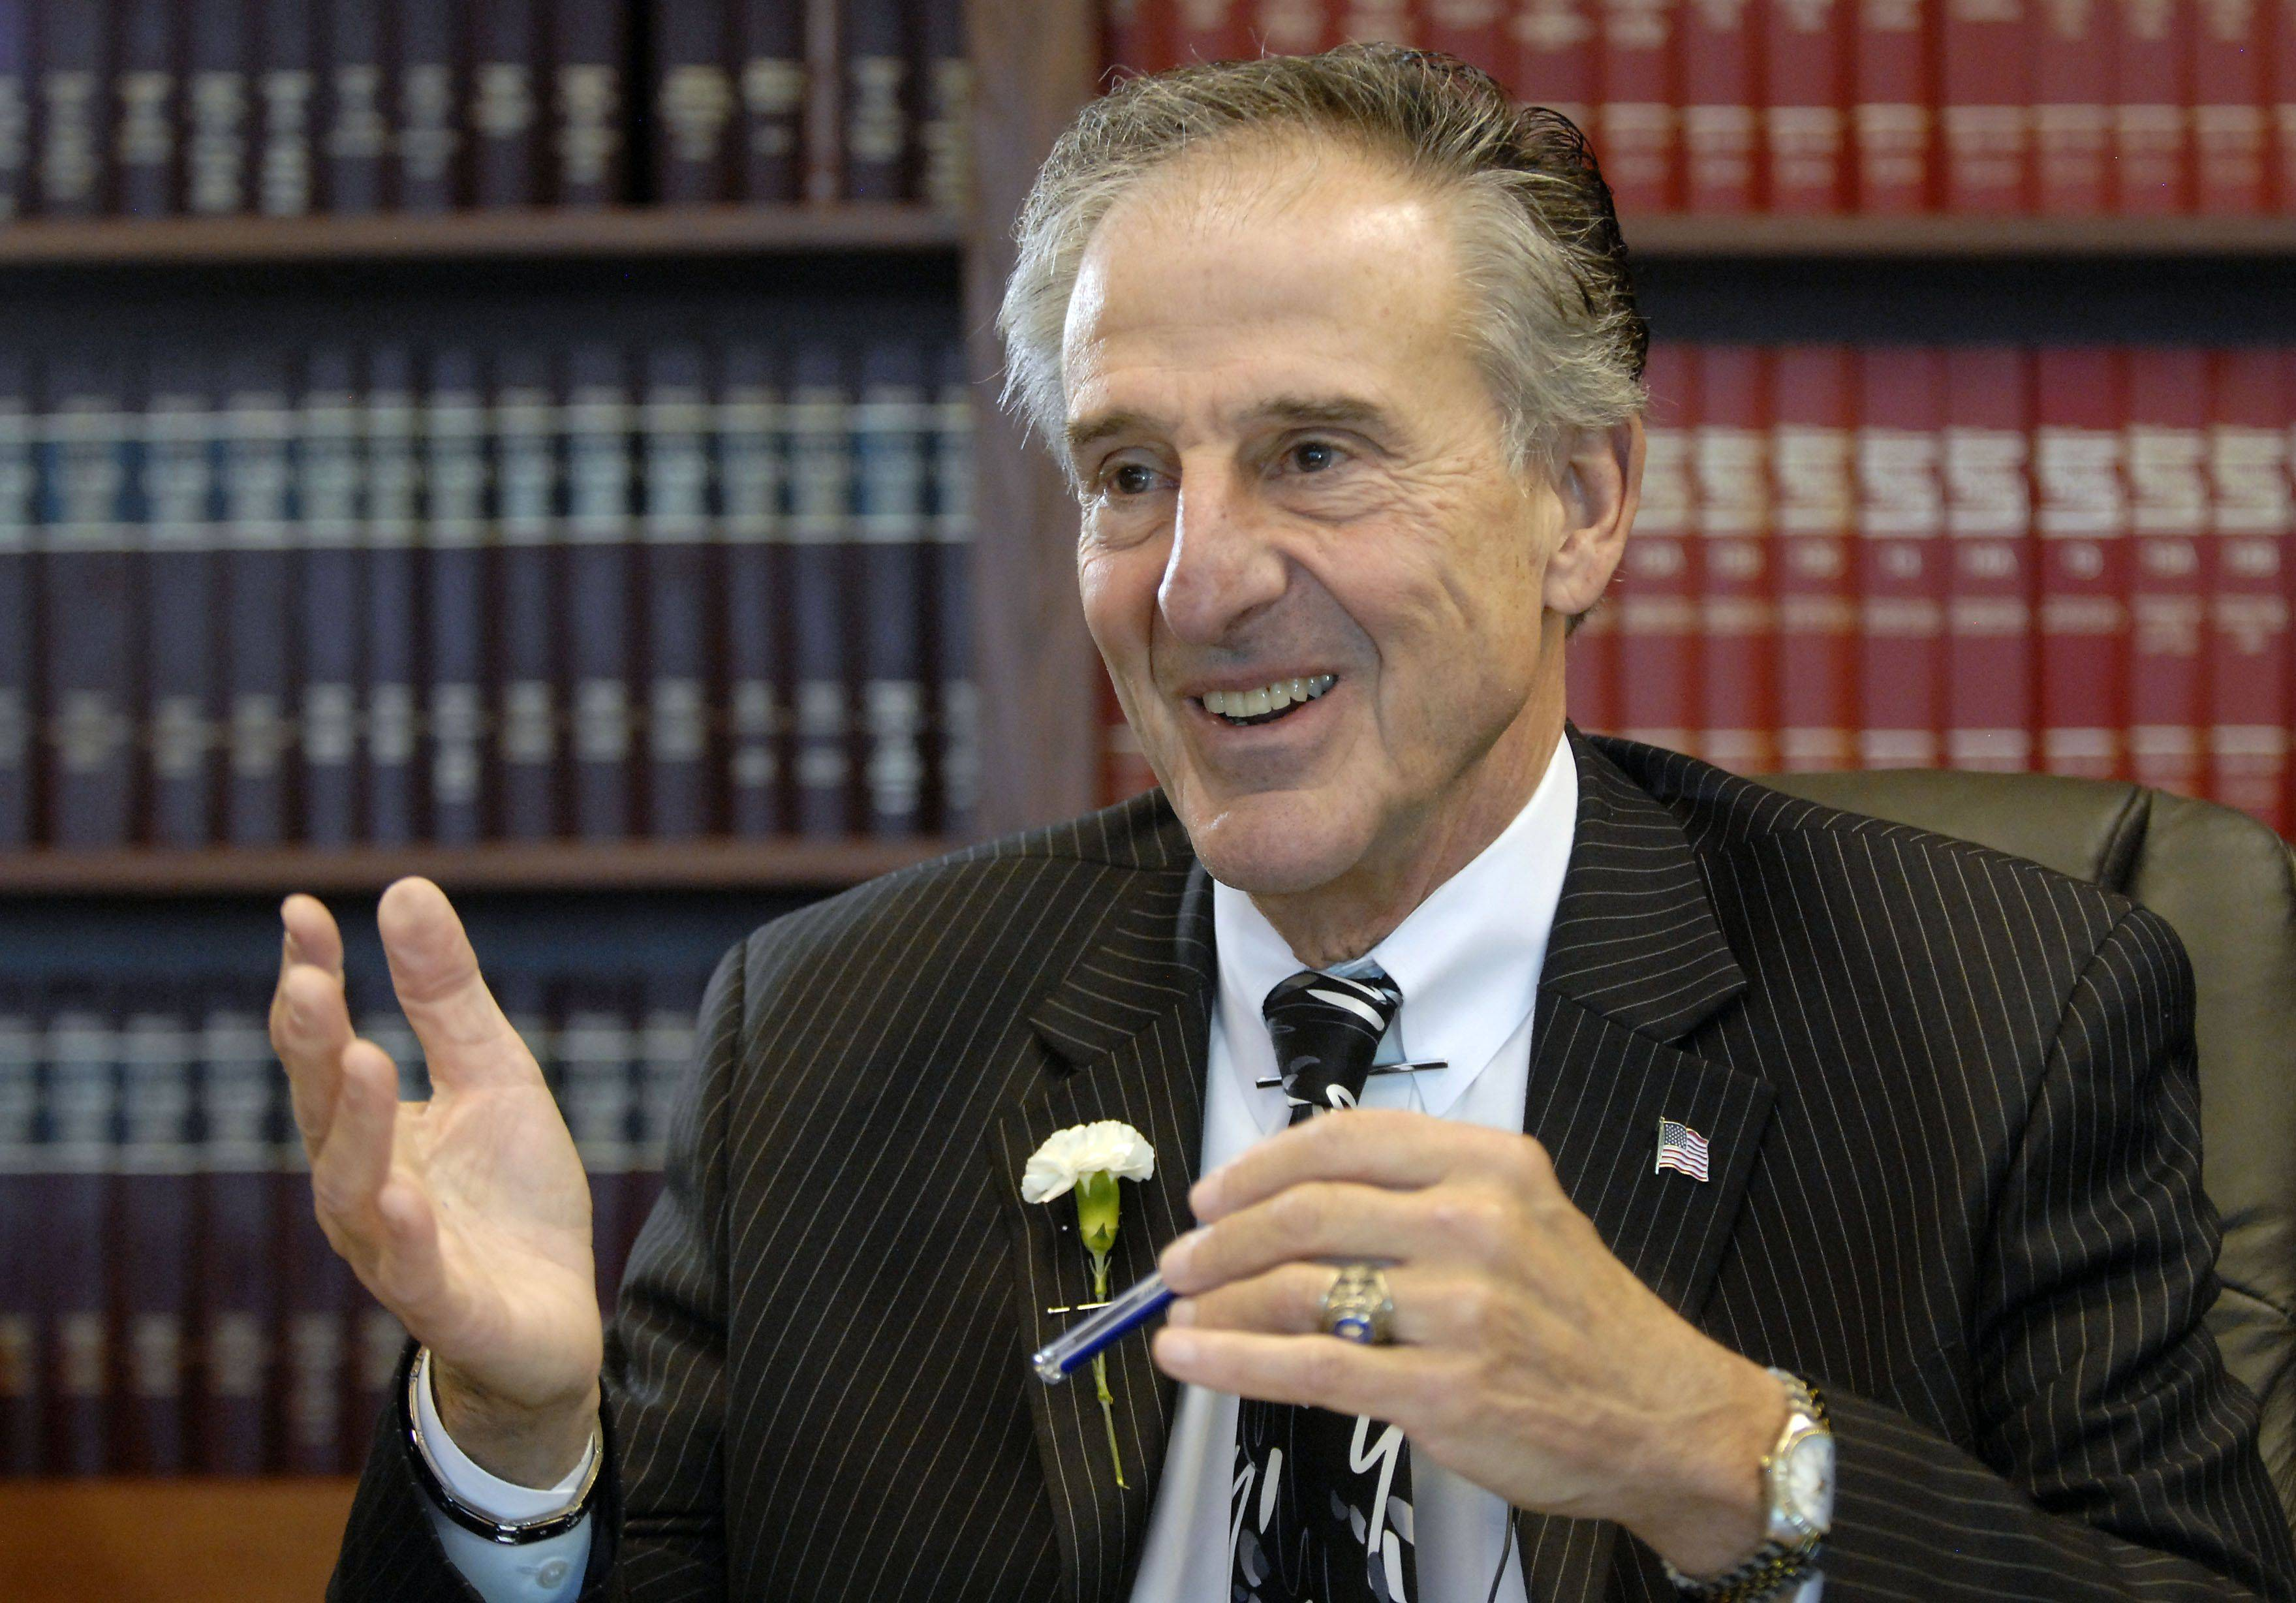 McHenry County State's Attorney Louis Bianchi was exonerated  on 21 charges of conspiracy and misconduct.